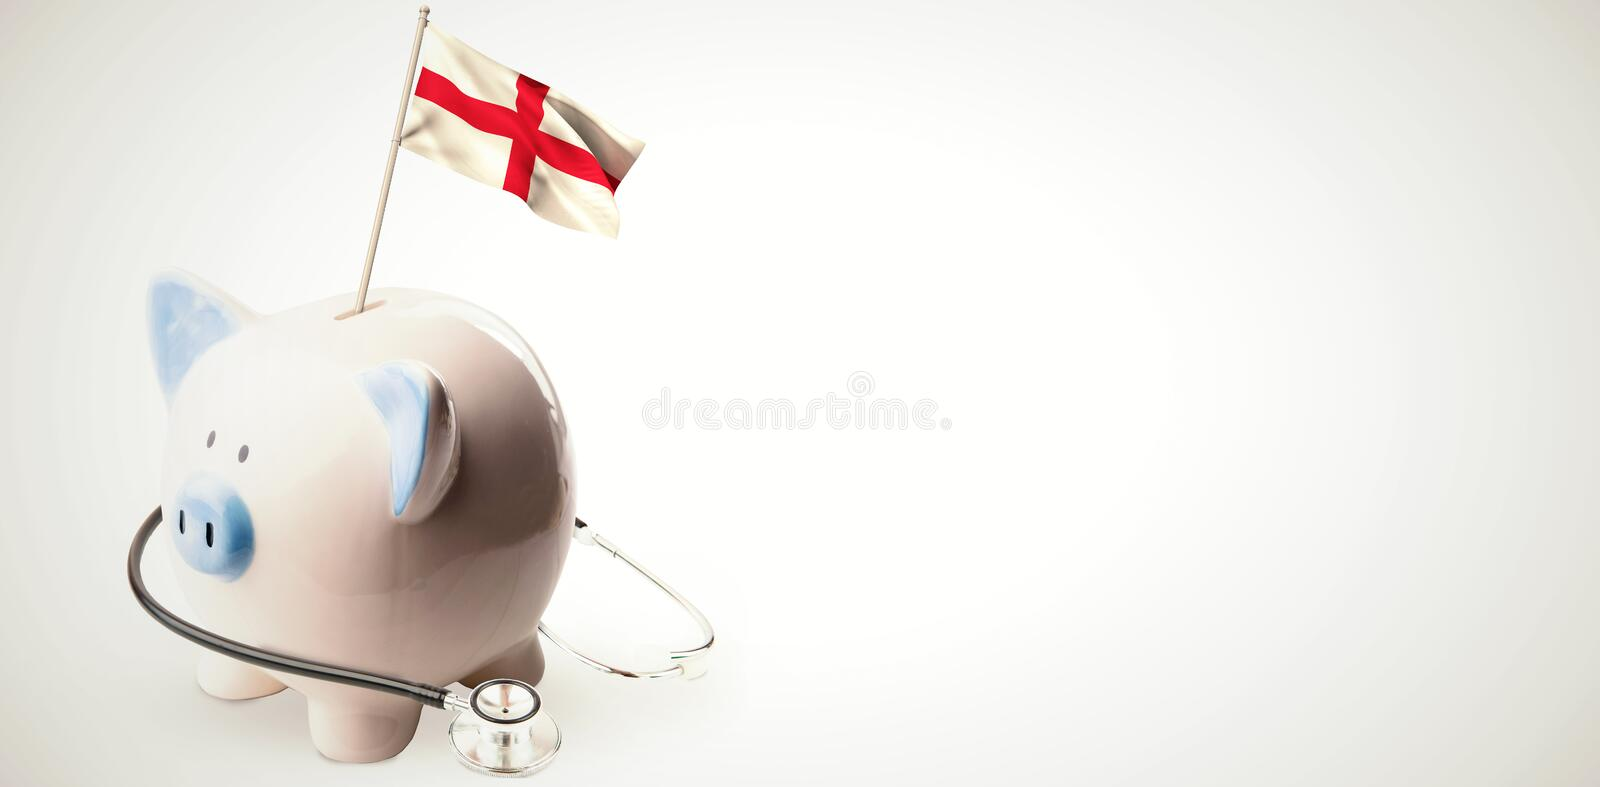 Composite image of digitally generated england national flag. Digitally generated england national flag against white background with vignette stock illustration